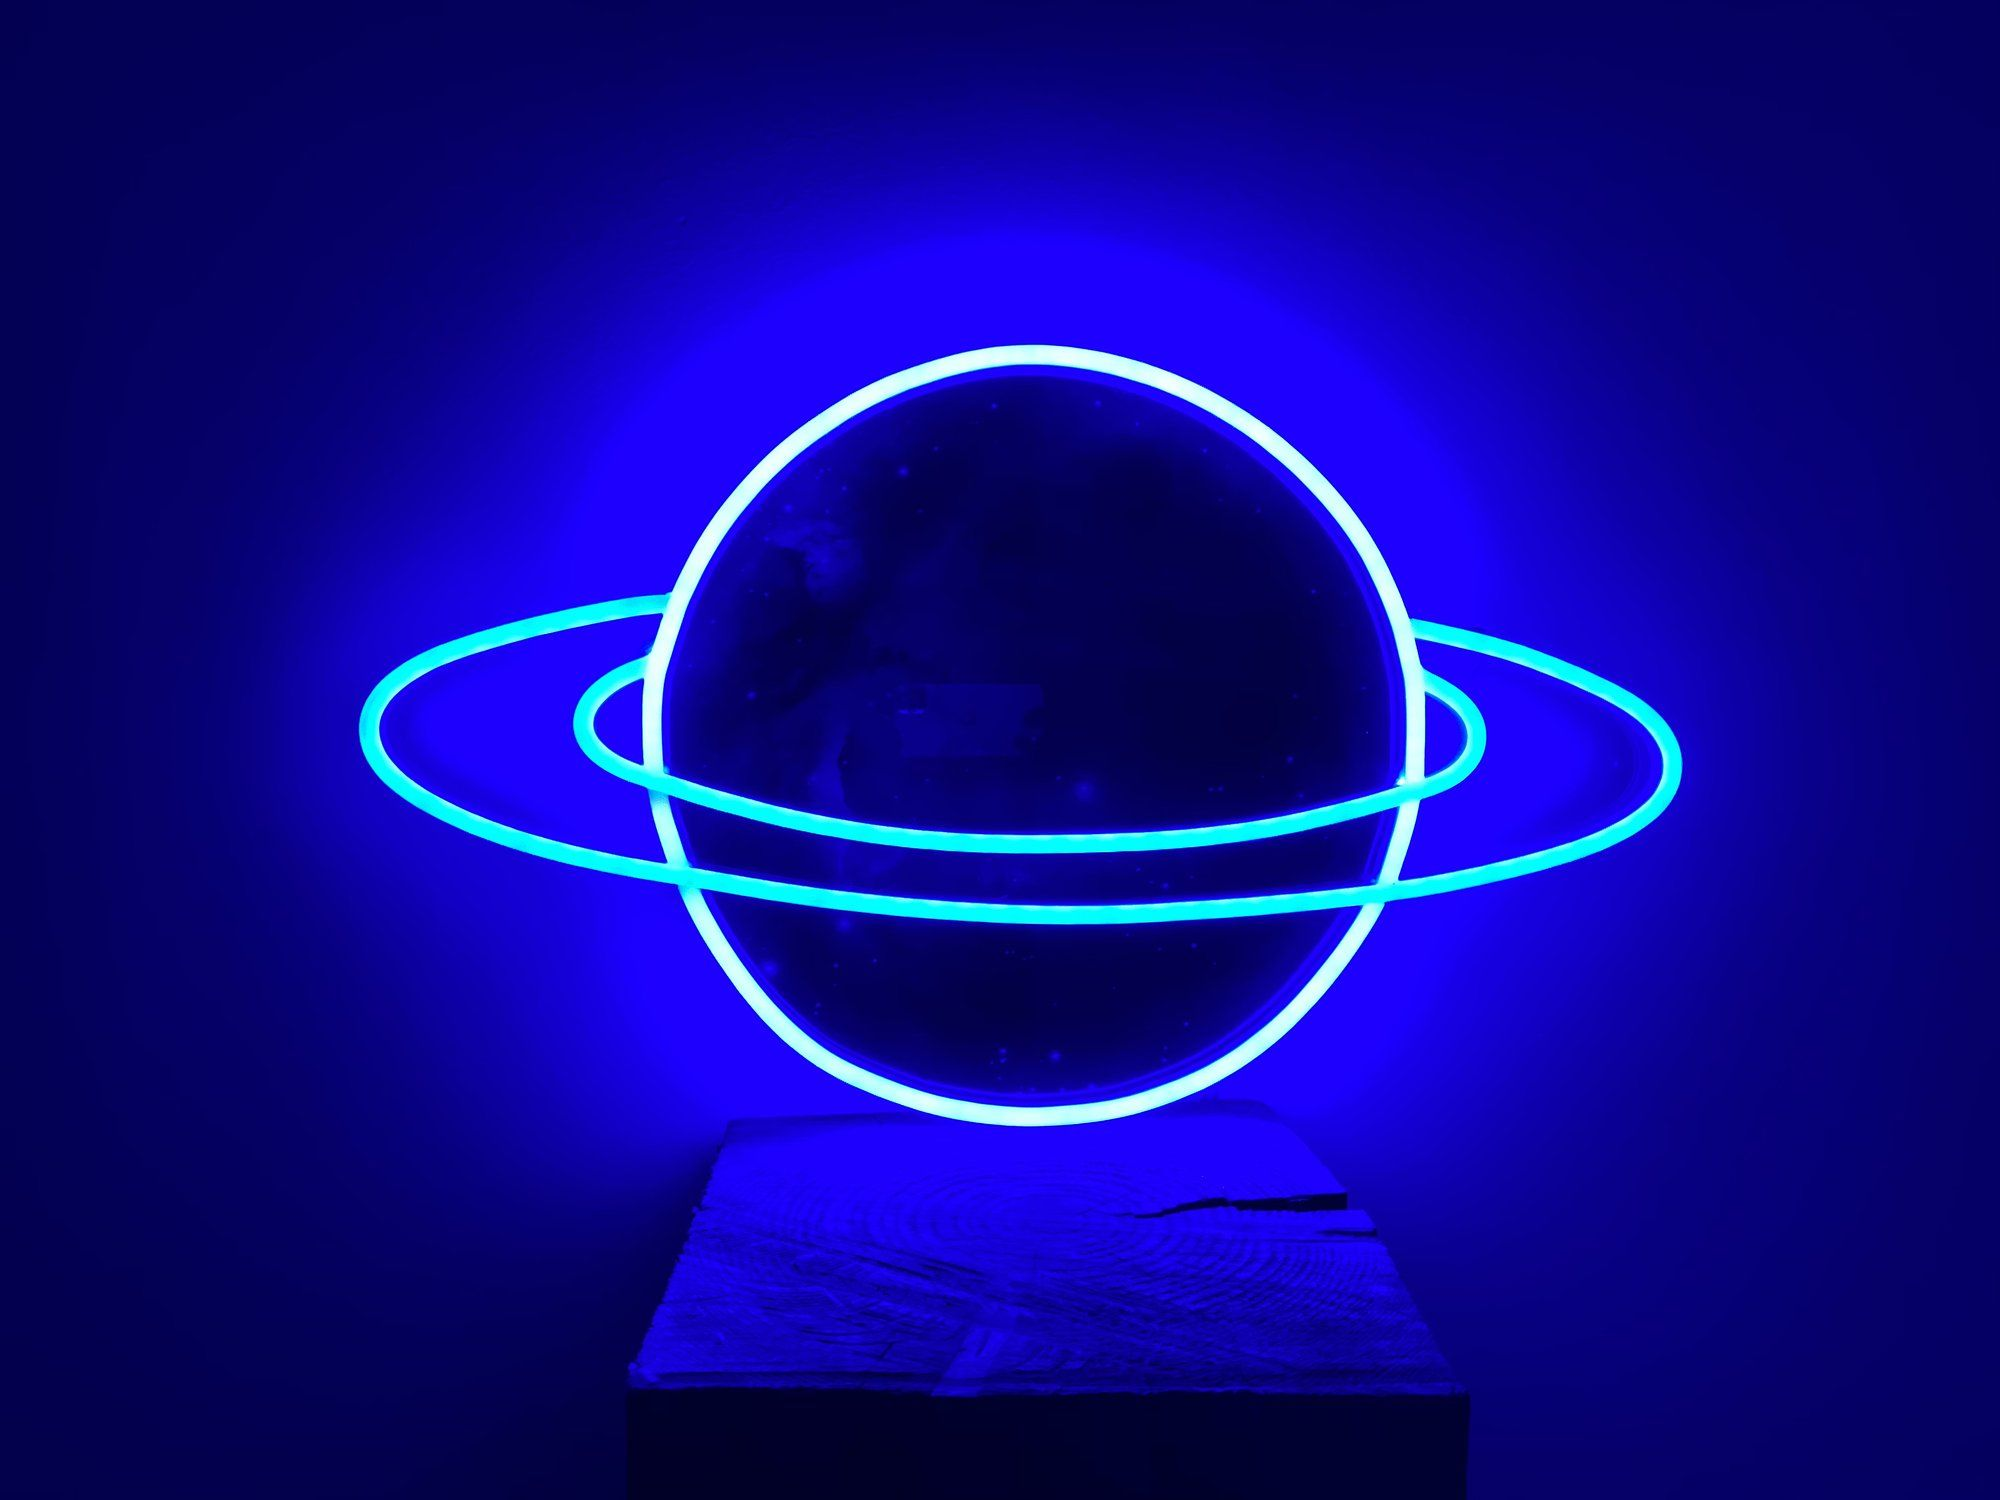 Planet Saturn Color Changing Animated Led Neon Sign Blue Neon Lights Blue Wallpaper Iphone Blue Aesthetic Dark Electric blue neon neon wallpaper